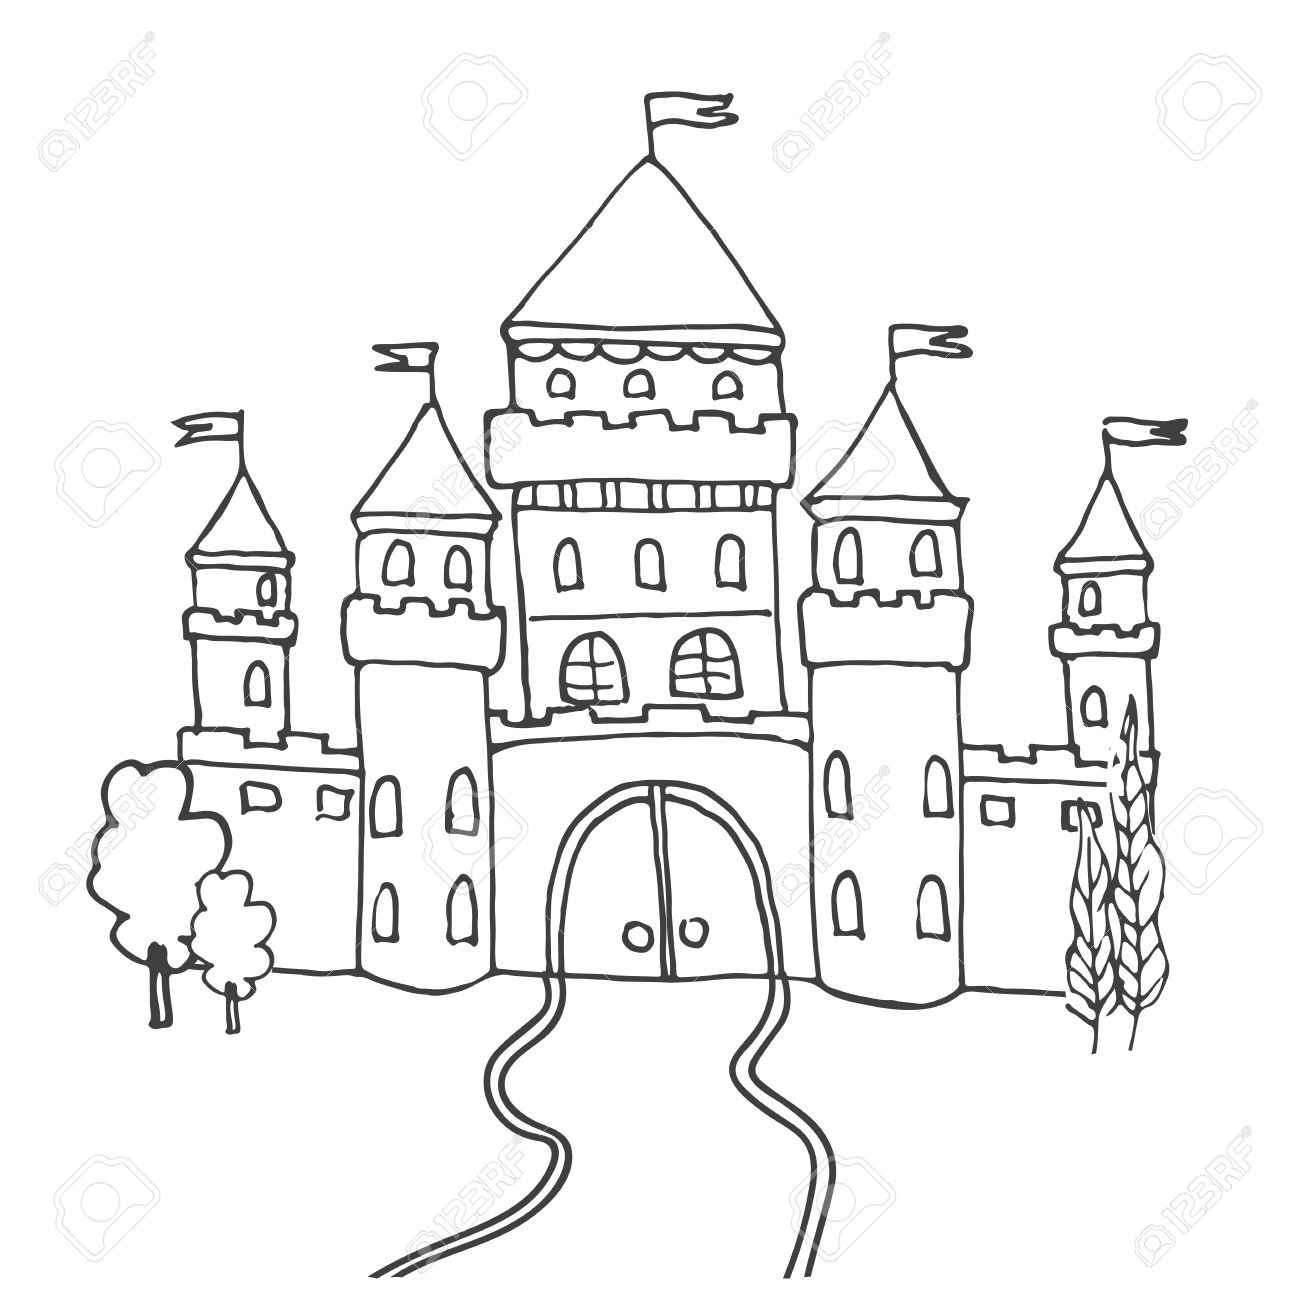 Snow castle clipart black and white sketch clipart transparent stock Fairytale Castle Clipart Black And White clipart transparent stock